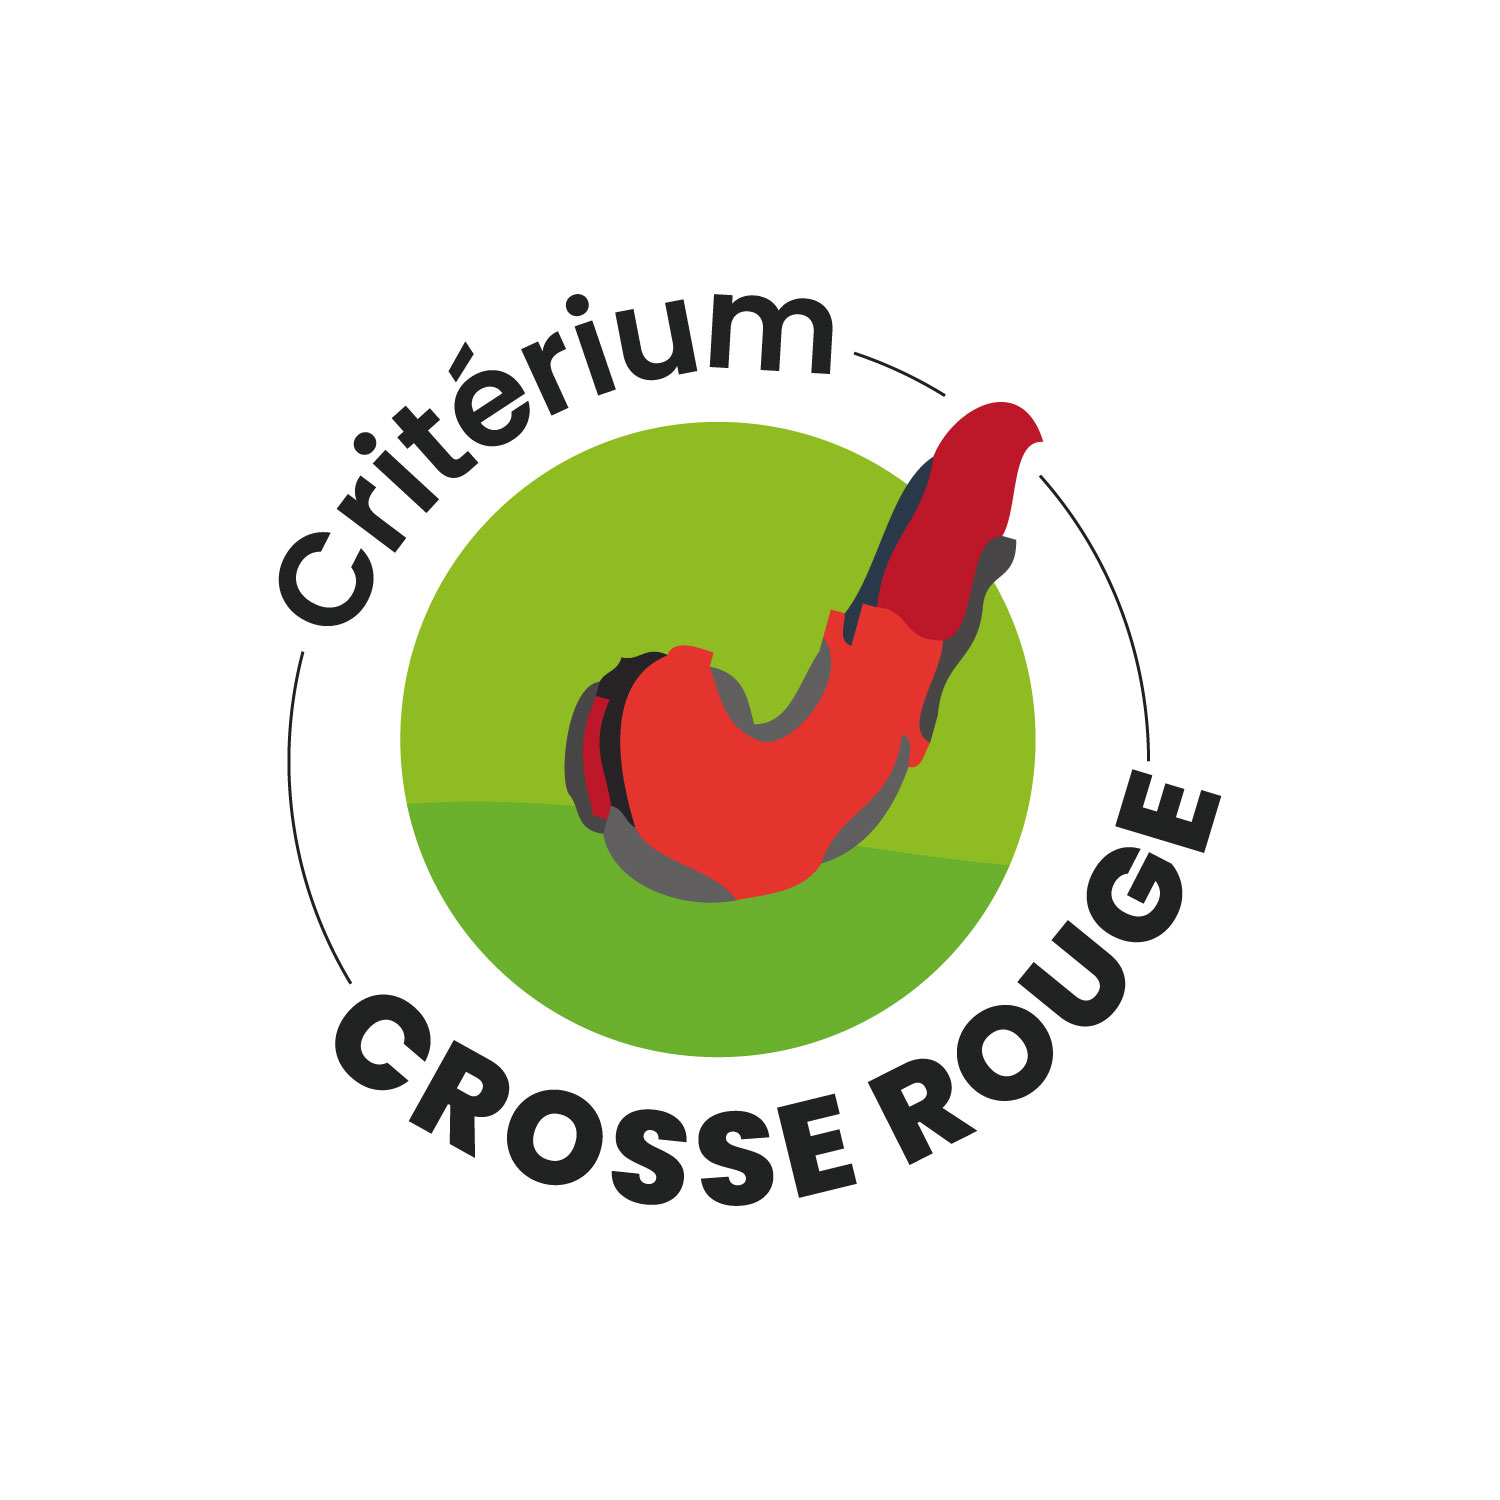 logo criteriuem crosserouge